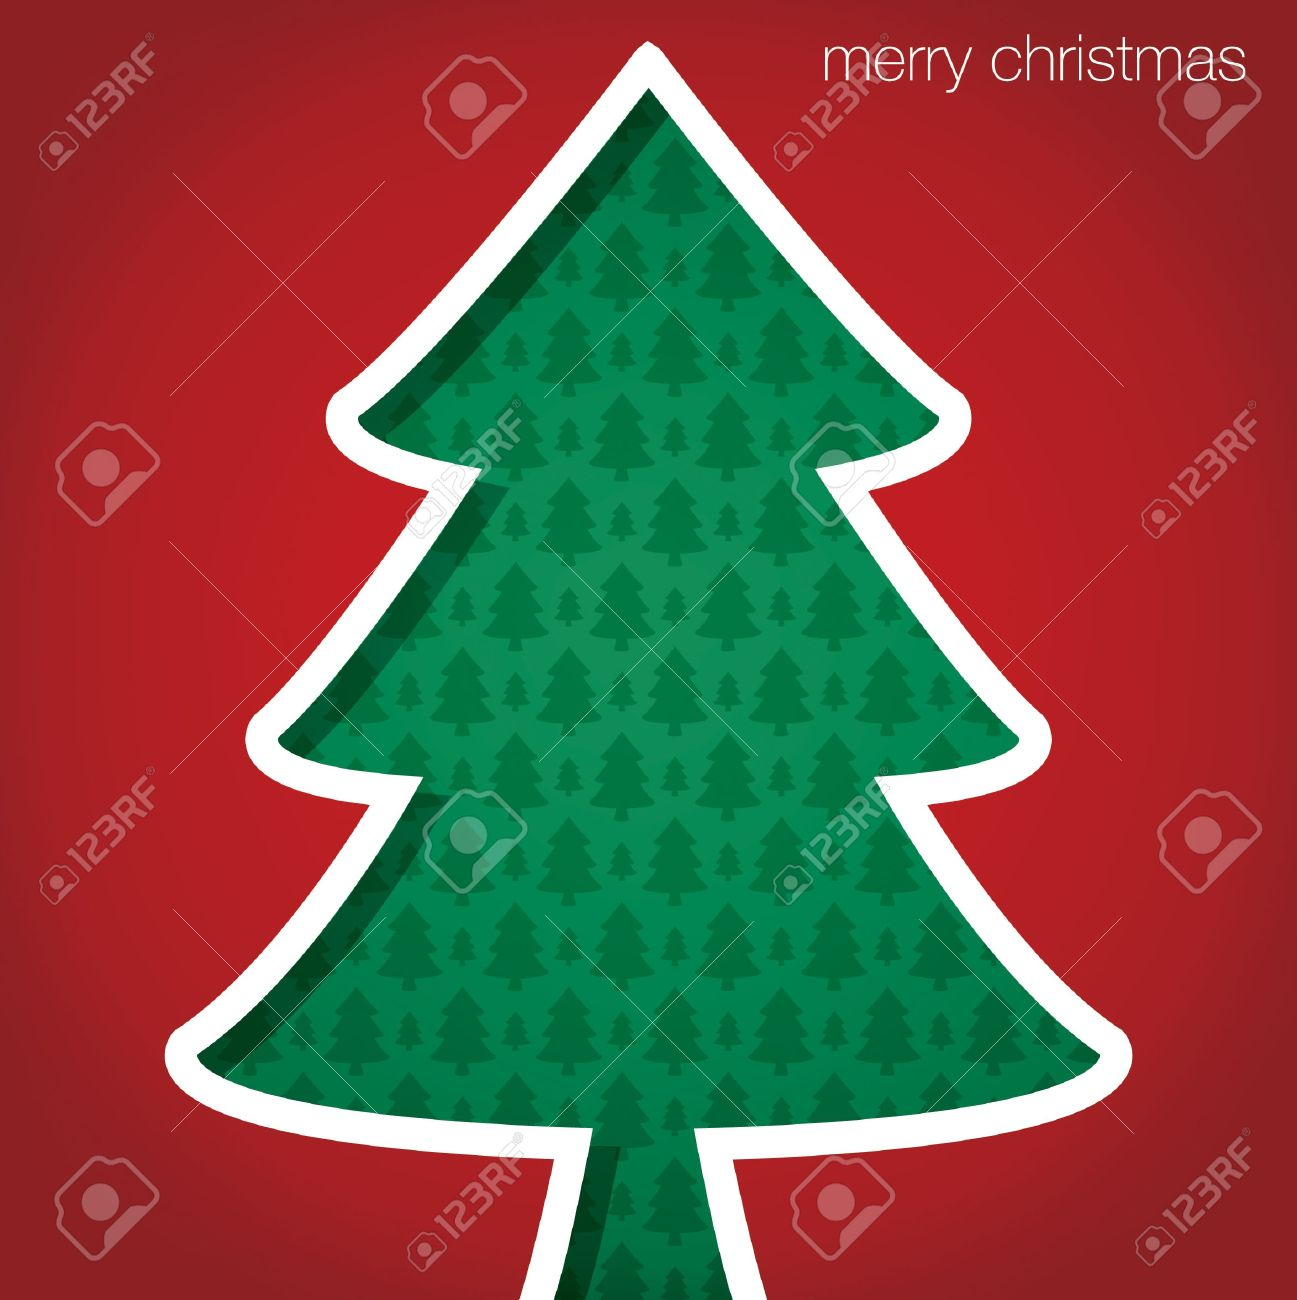 Christmas Tree Merry Cut Out Card Stock Vector